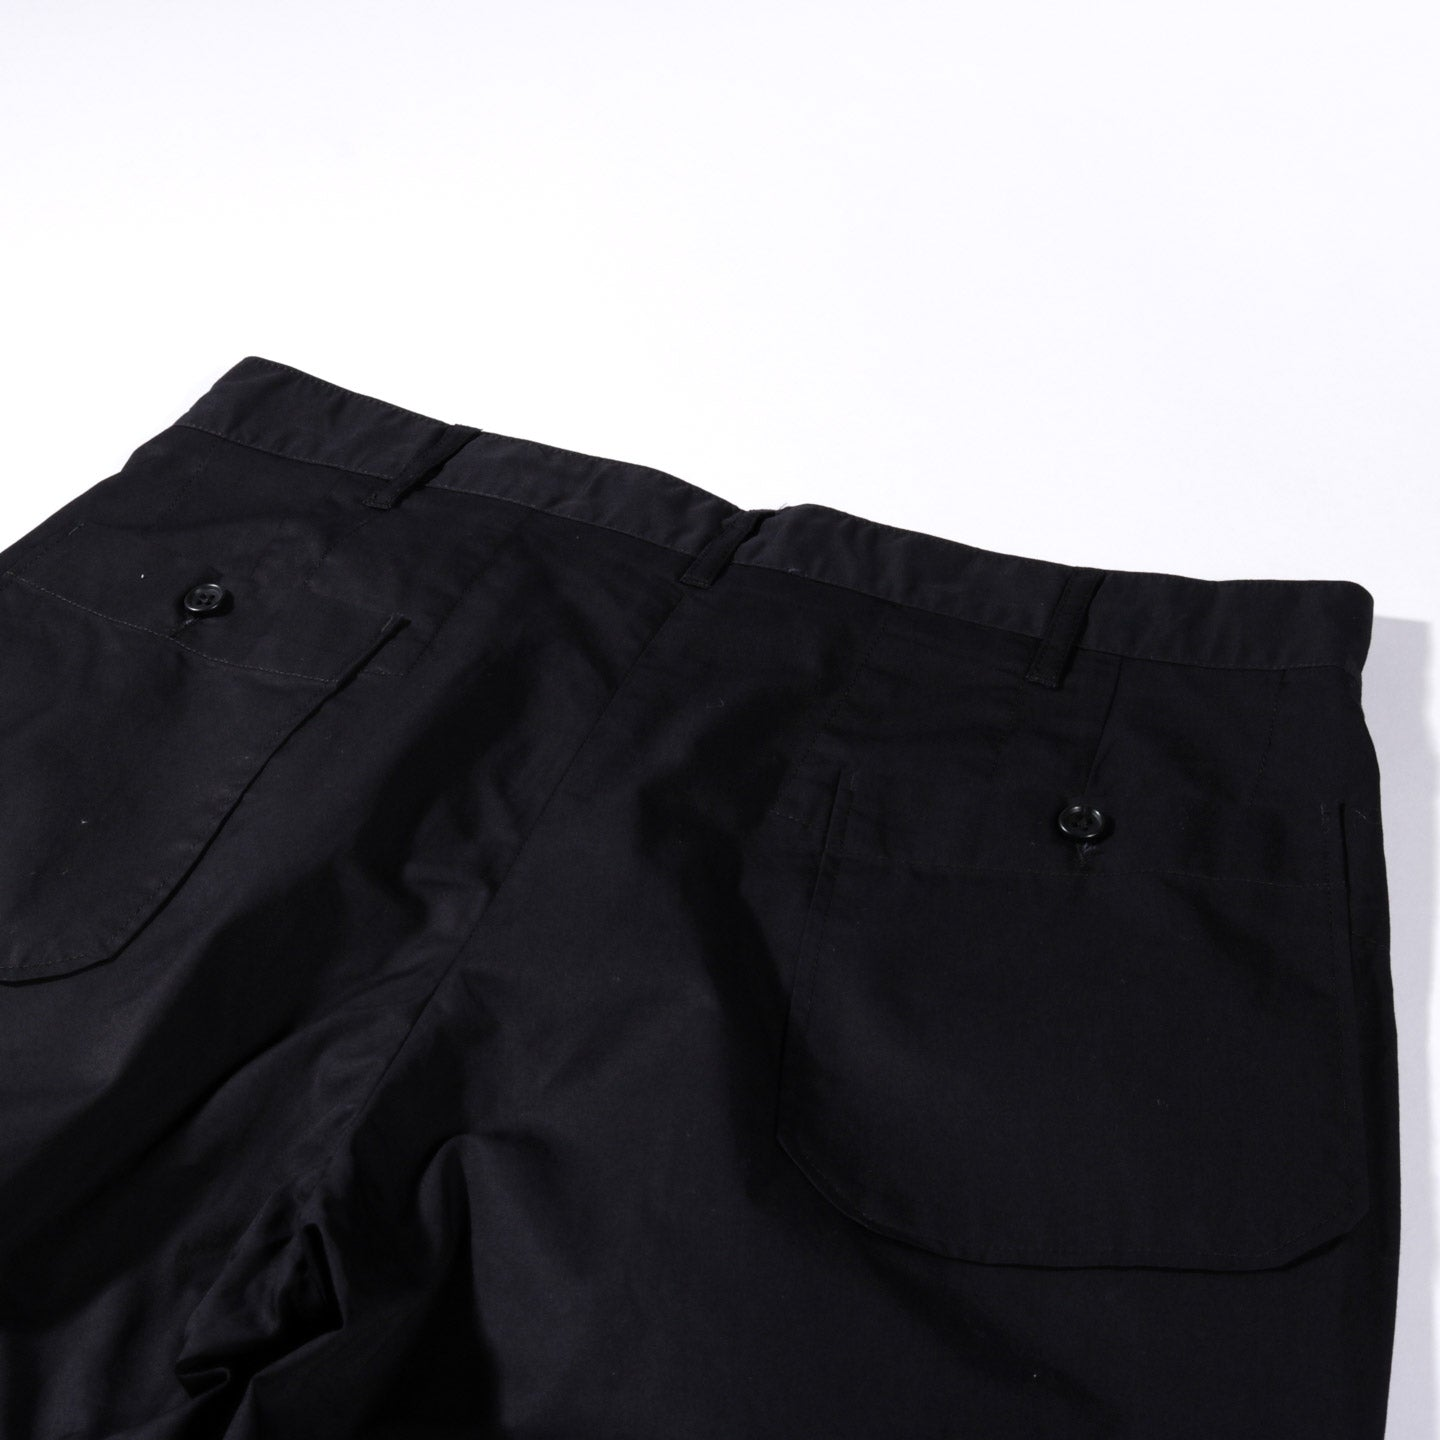 ENGINEERED GARMENTS CARLYLE PANT BLACK HIGHCOUNT TWILL